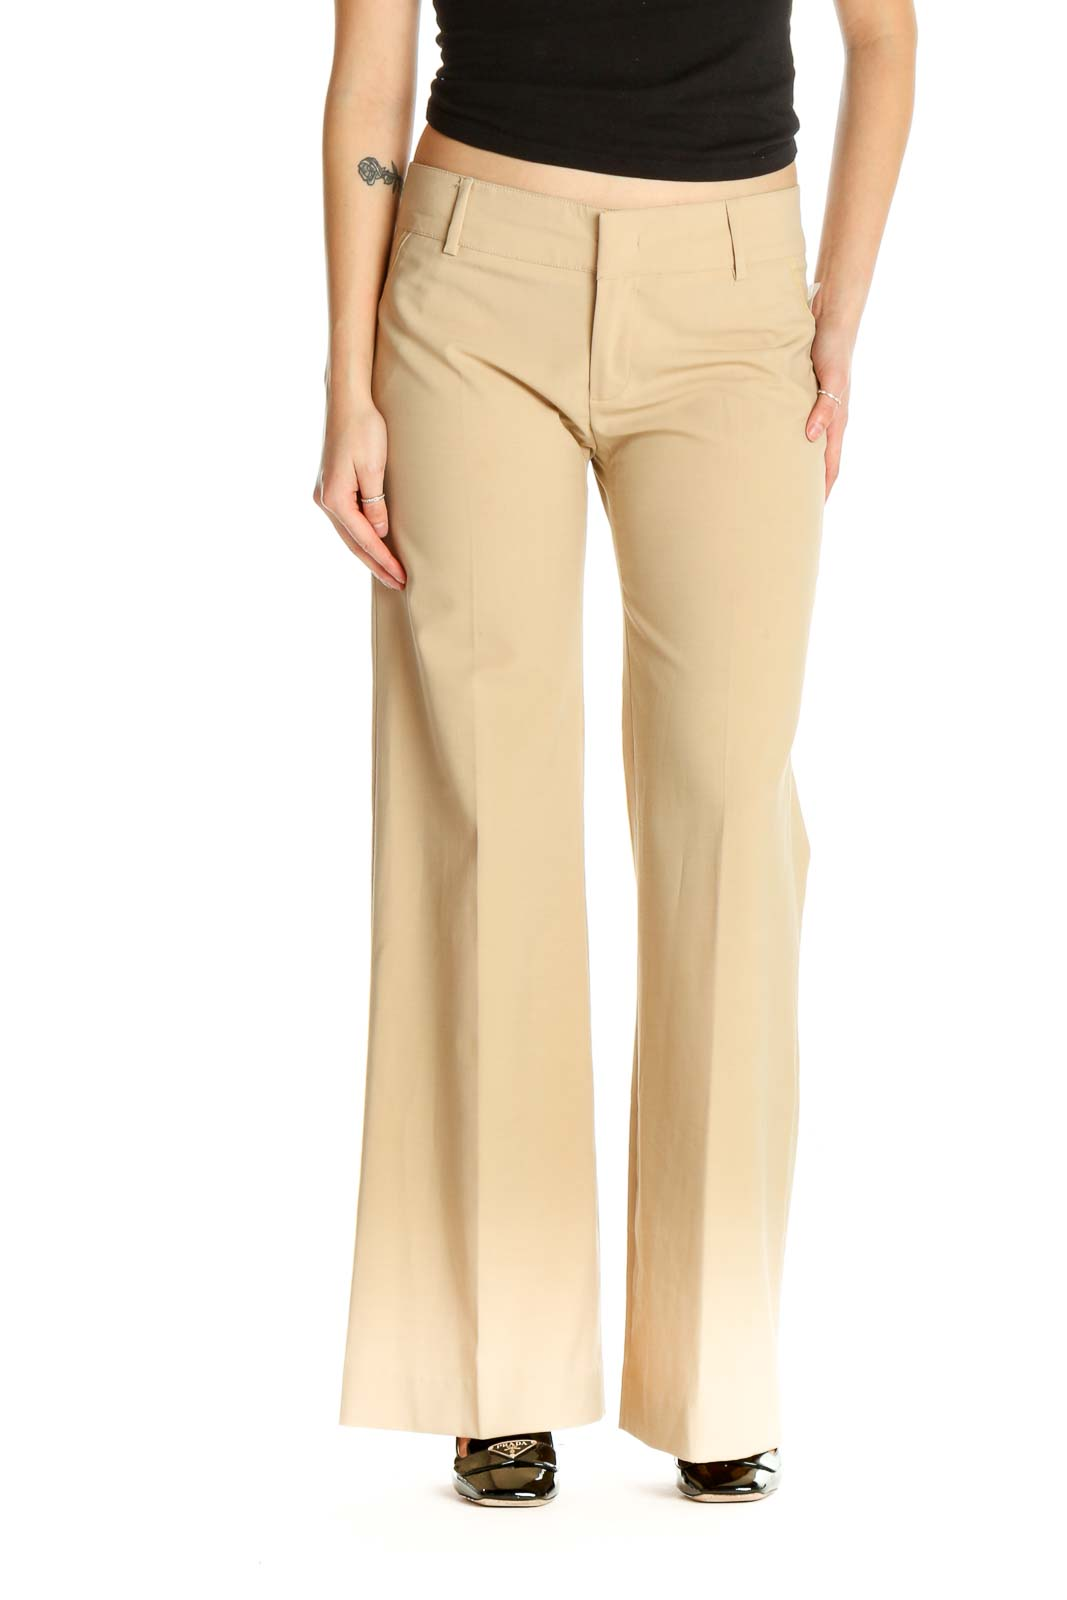 Beige Printed Casual Trousers Front